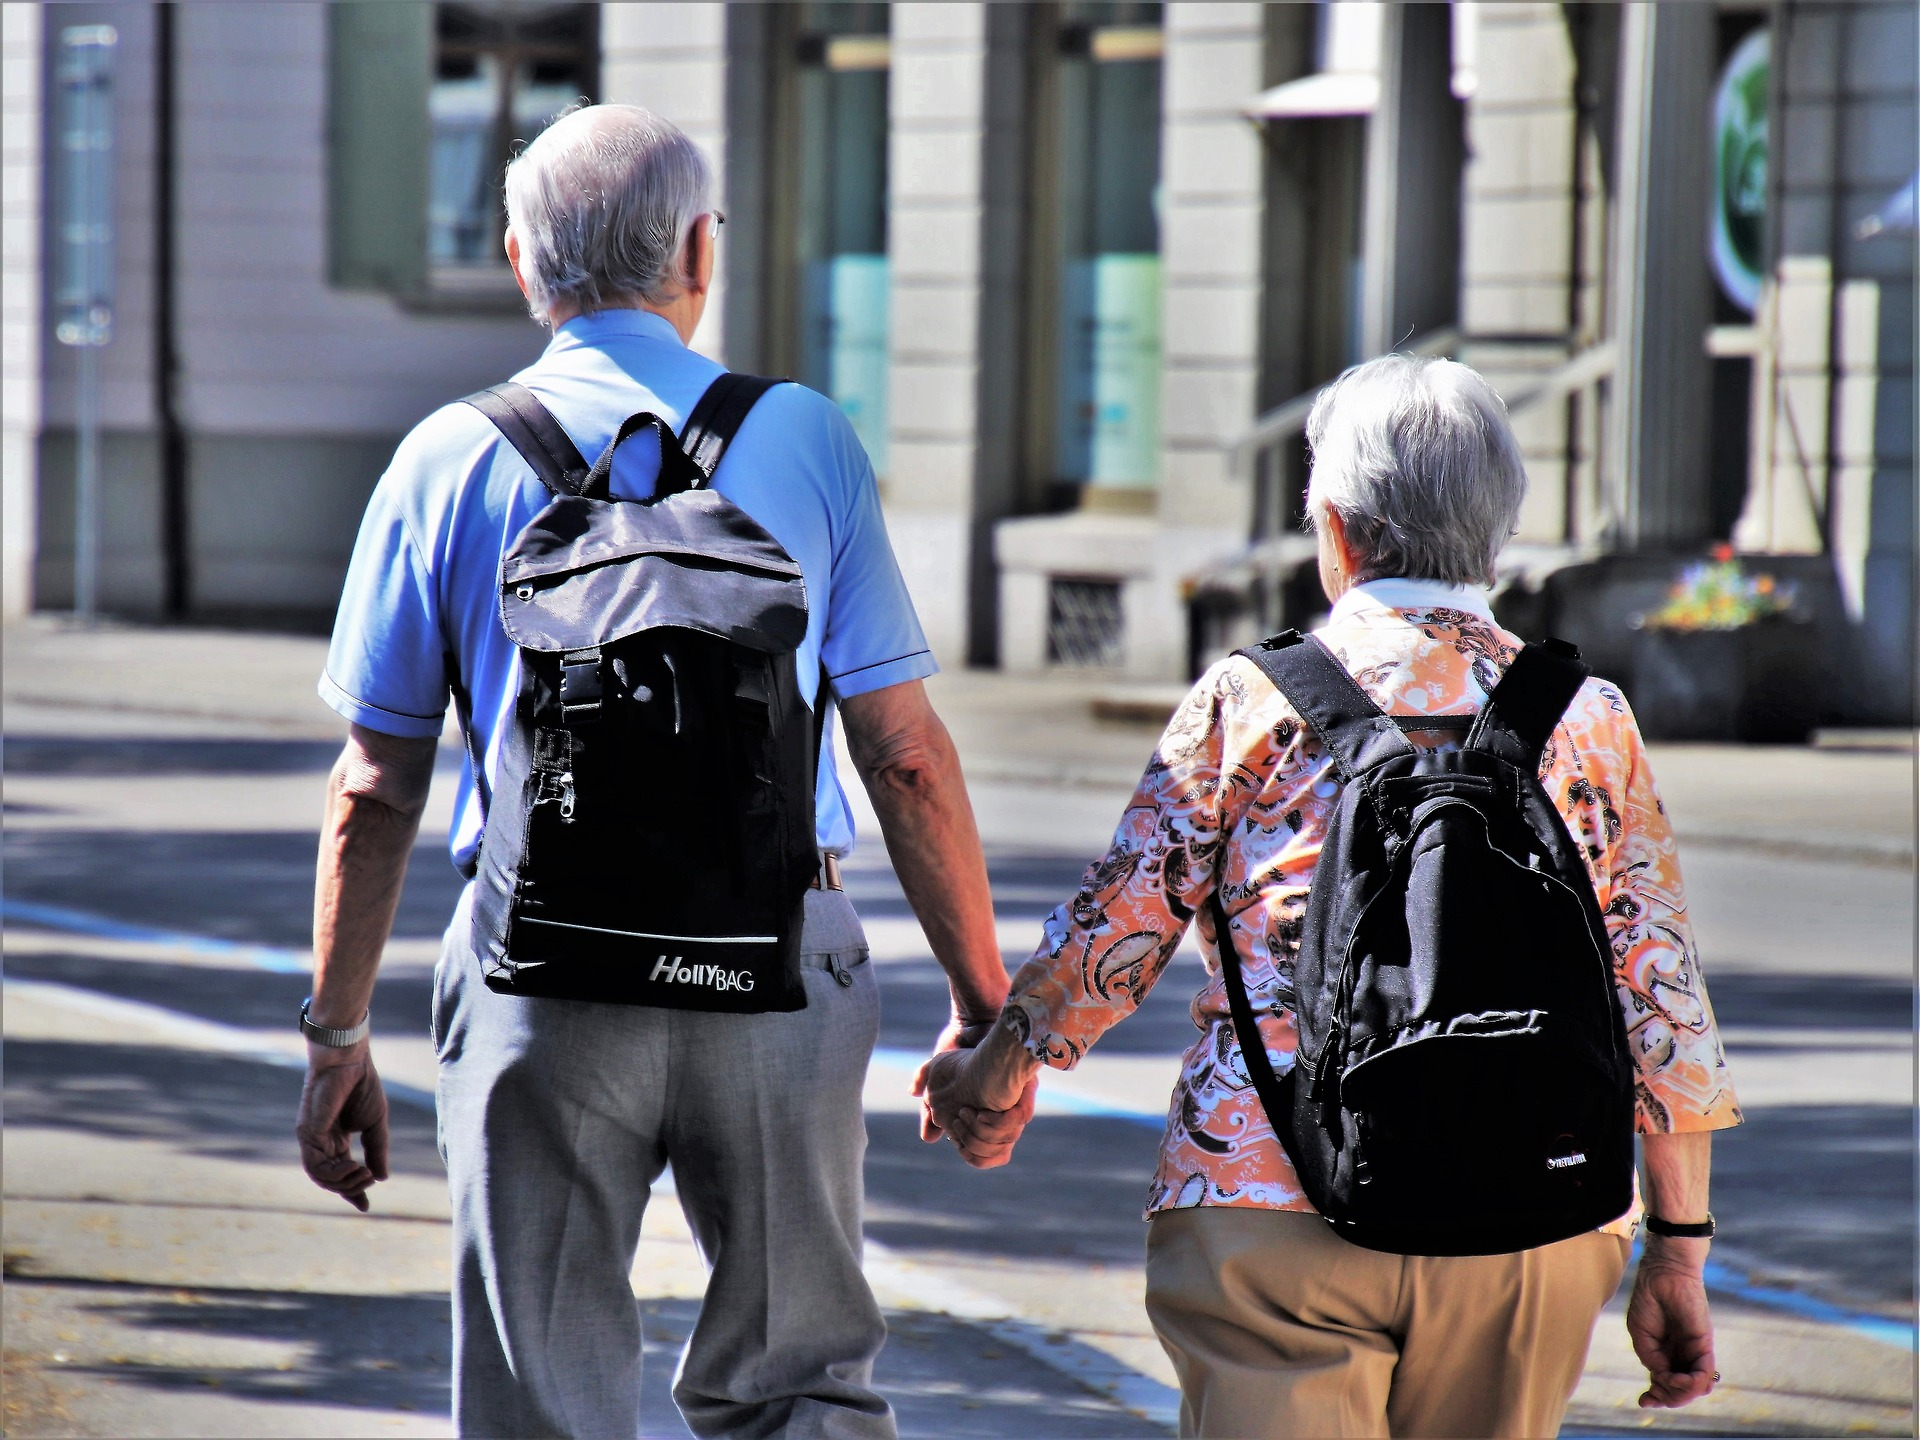 Two senior citizens holding hands with backpacks on